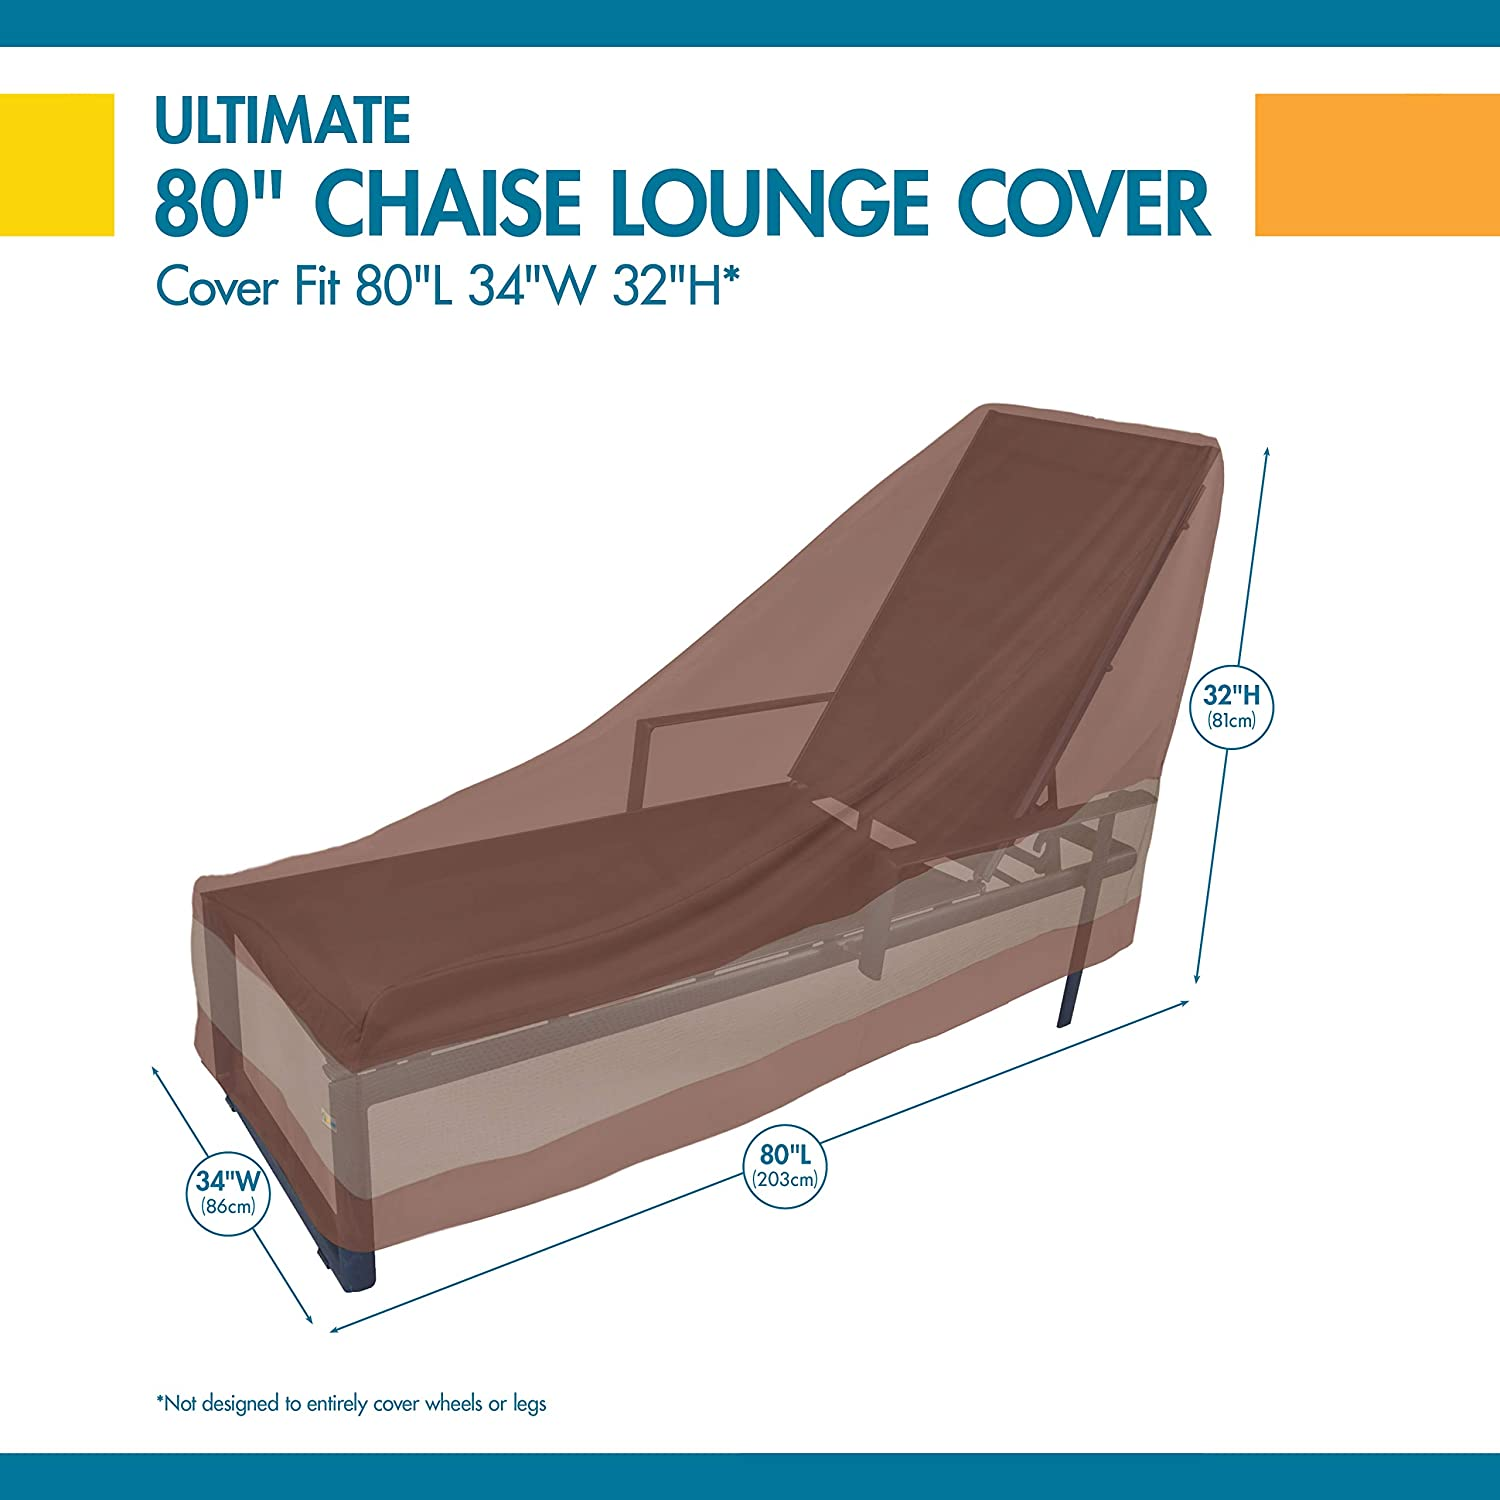 Duck Covers Ultimate Waterproof 80 Inch Patio Chaise Lounge Chair Cover : Garden & Outdoor